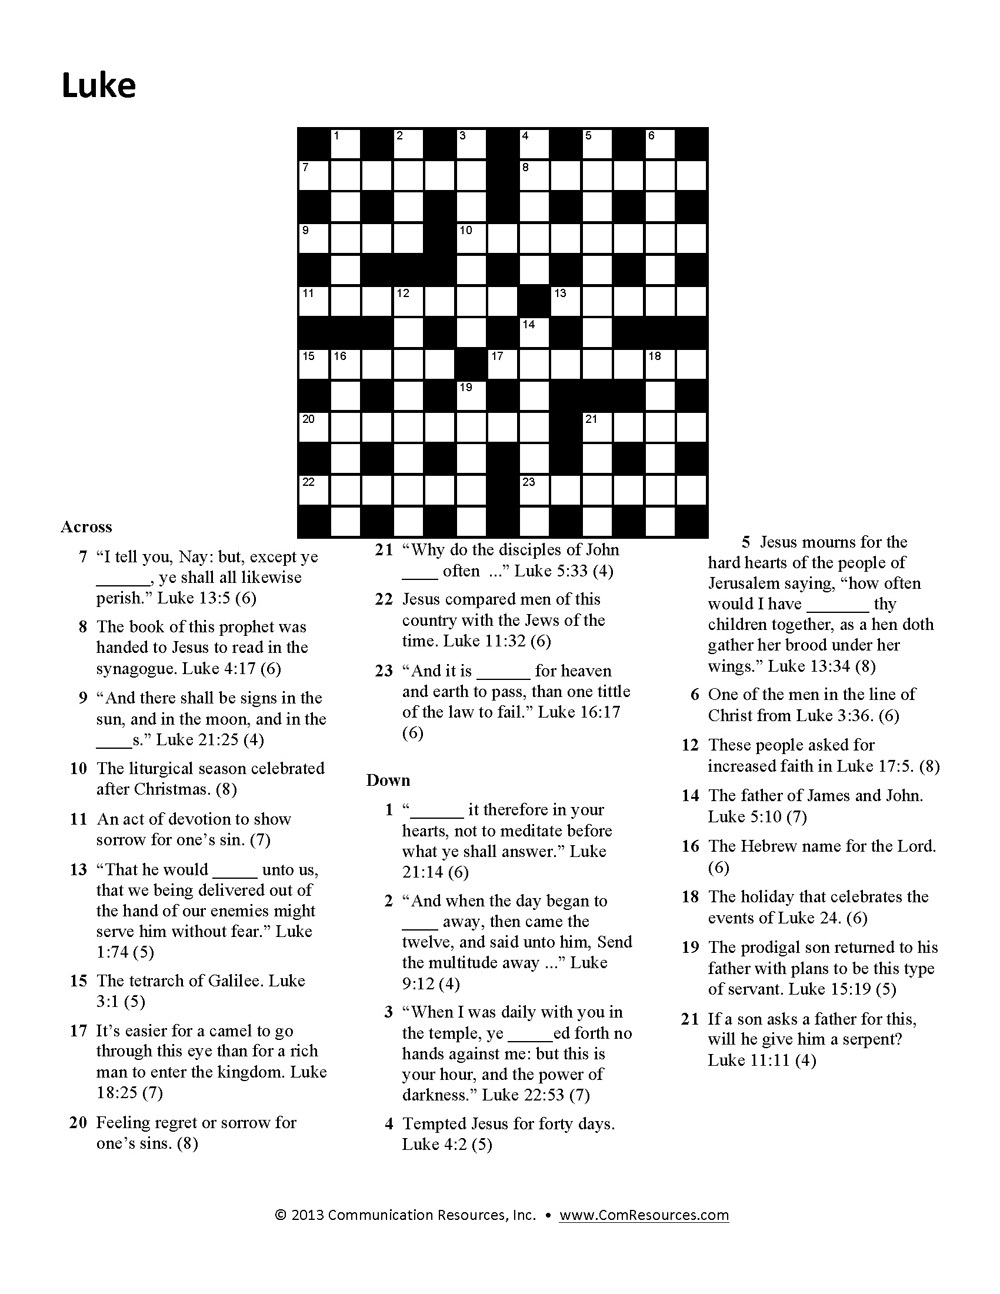 15 Fun Bible Crossword Puzzles | Kittybabylove - Christian Crossword Puzzles Printable